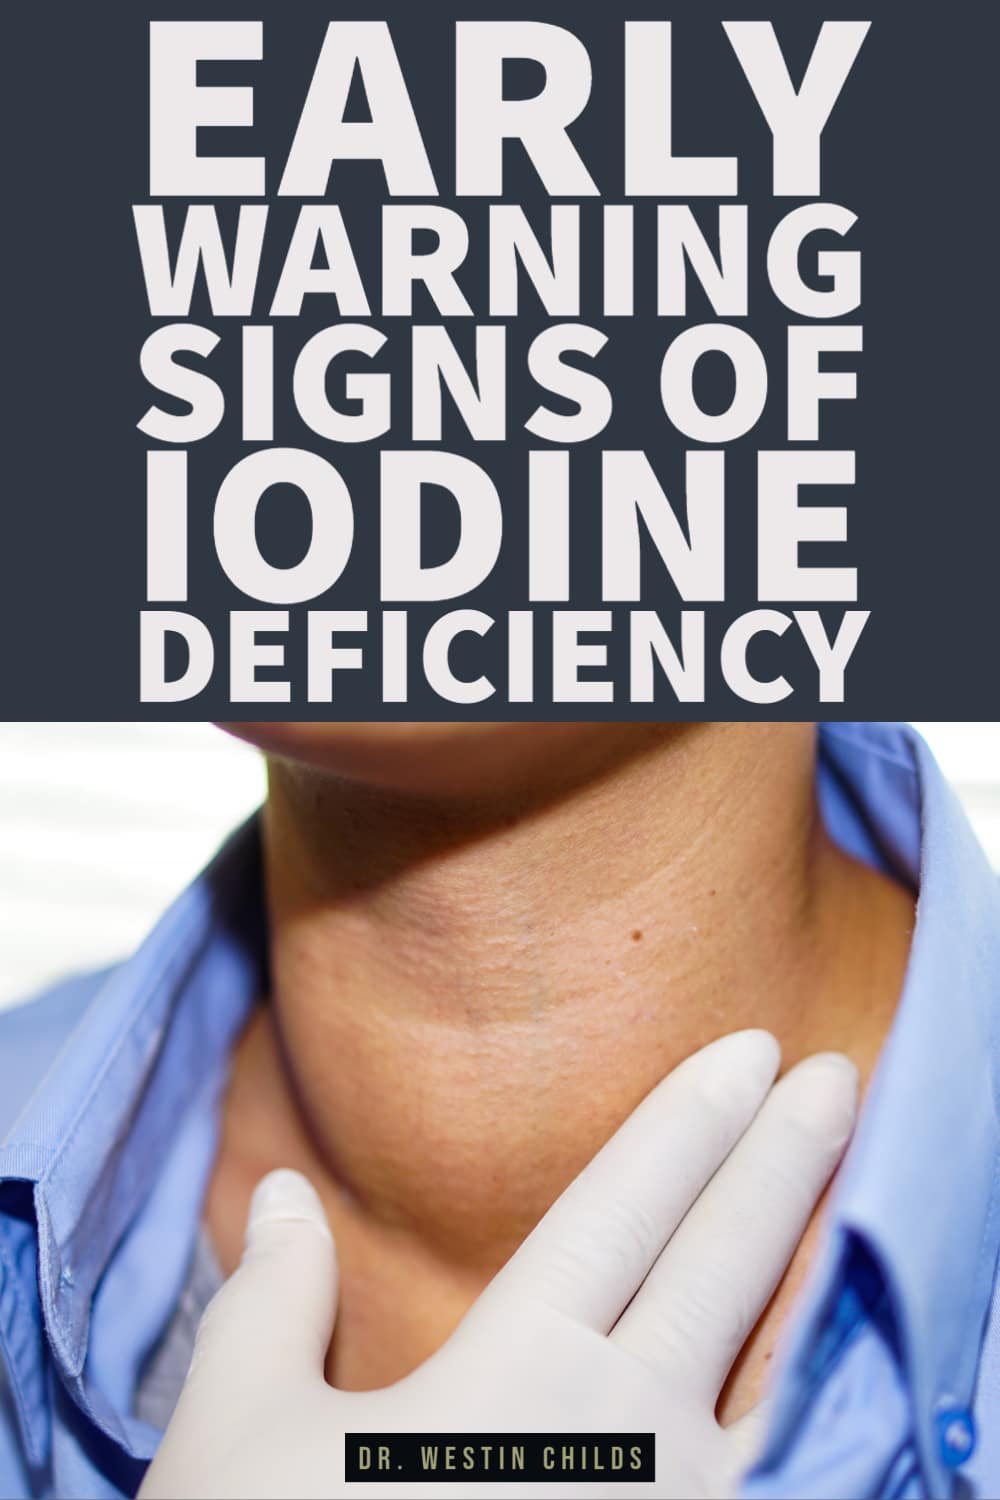 early warning signs you are not getting enough iodine